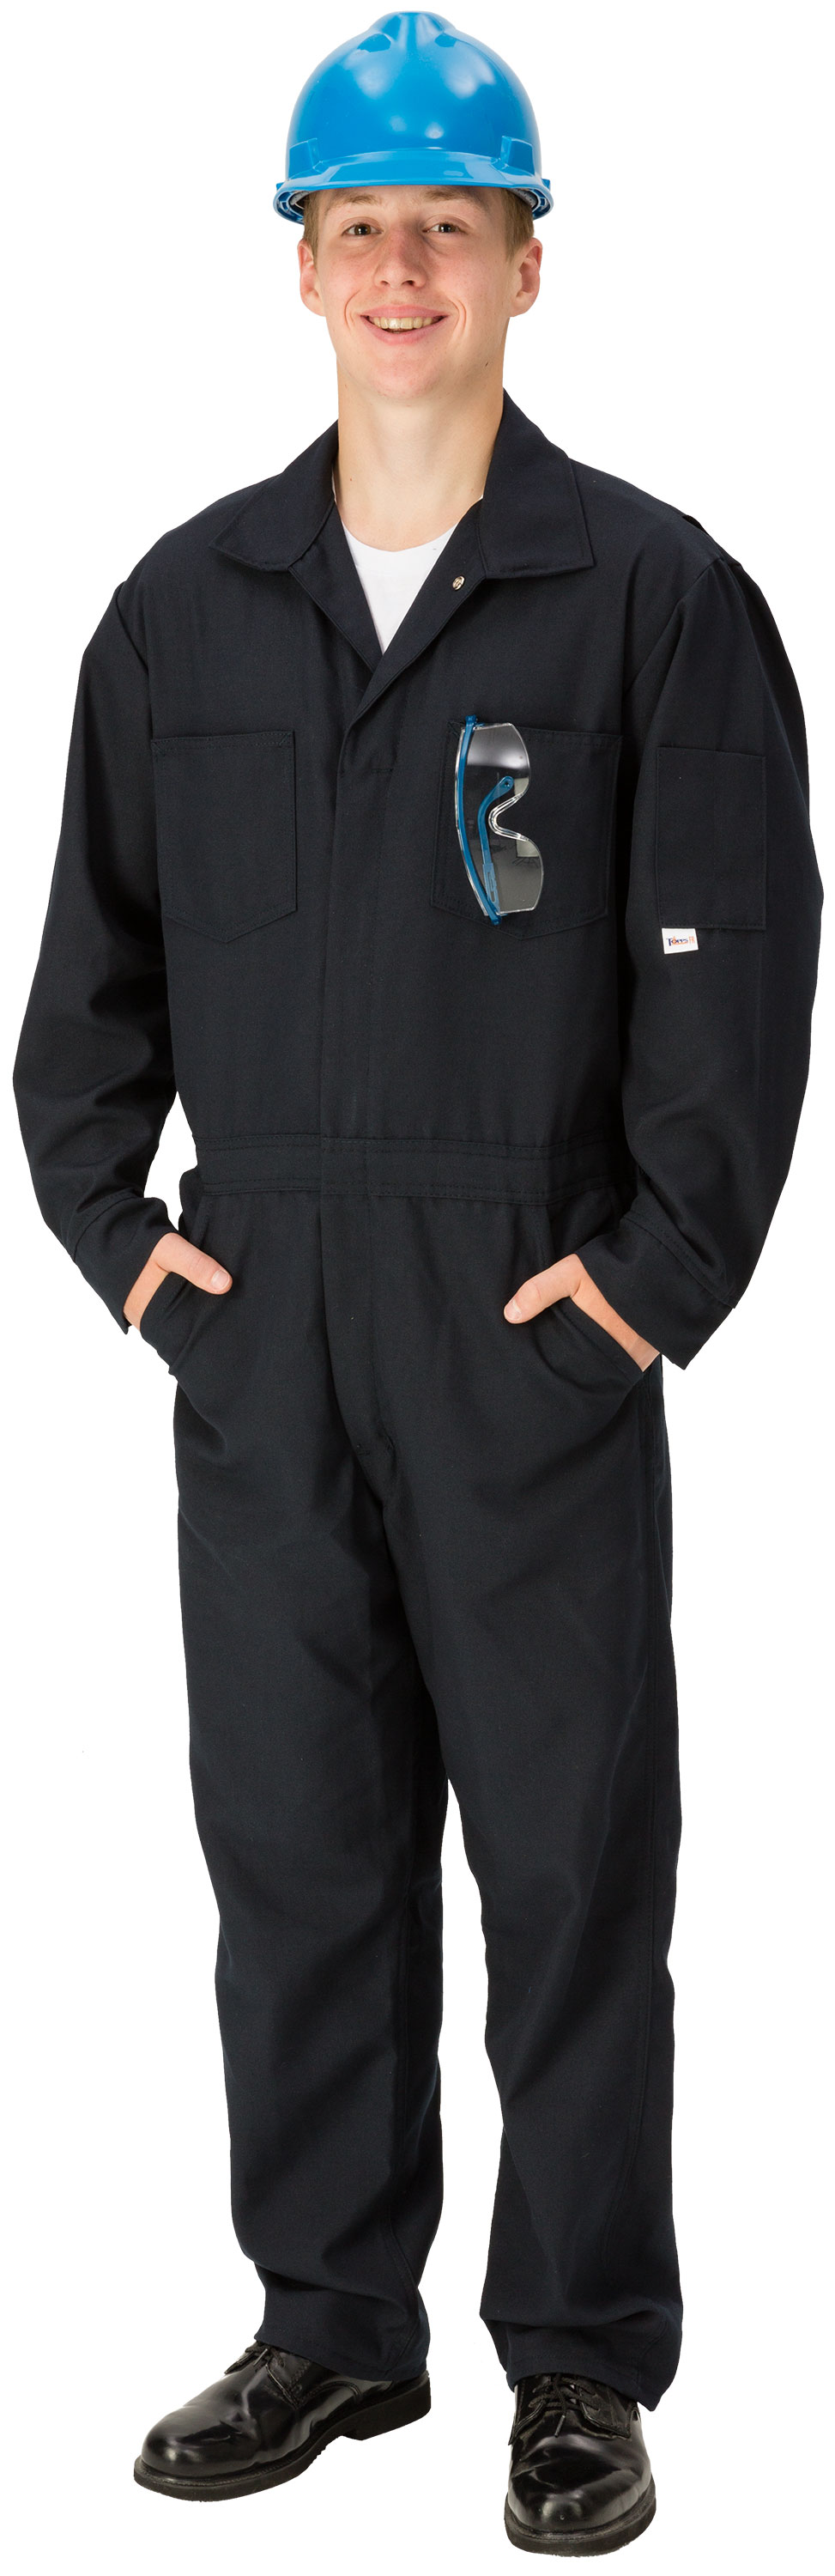 Nomex 6.0 oz. Coveralls-Topps Safety Apparel